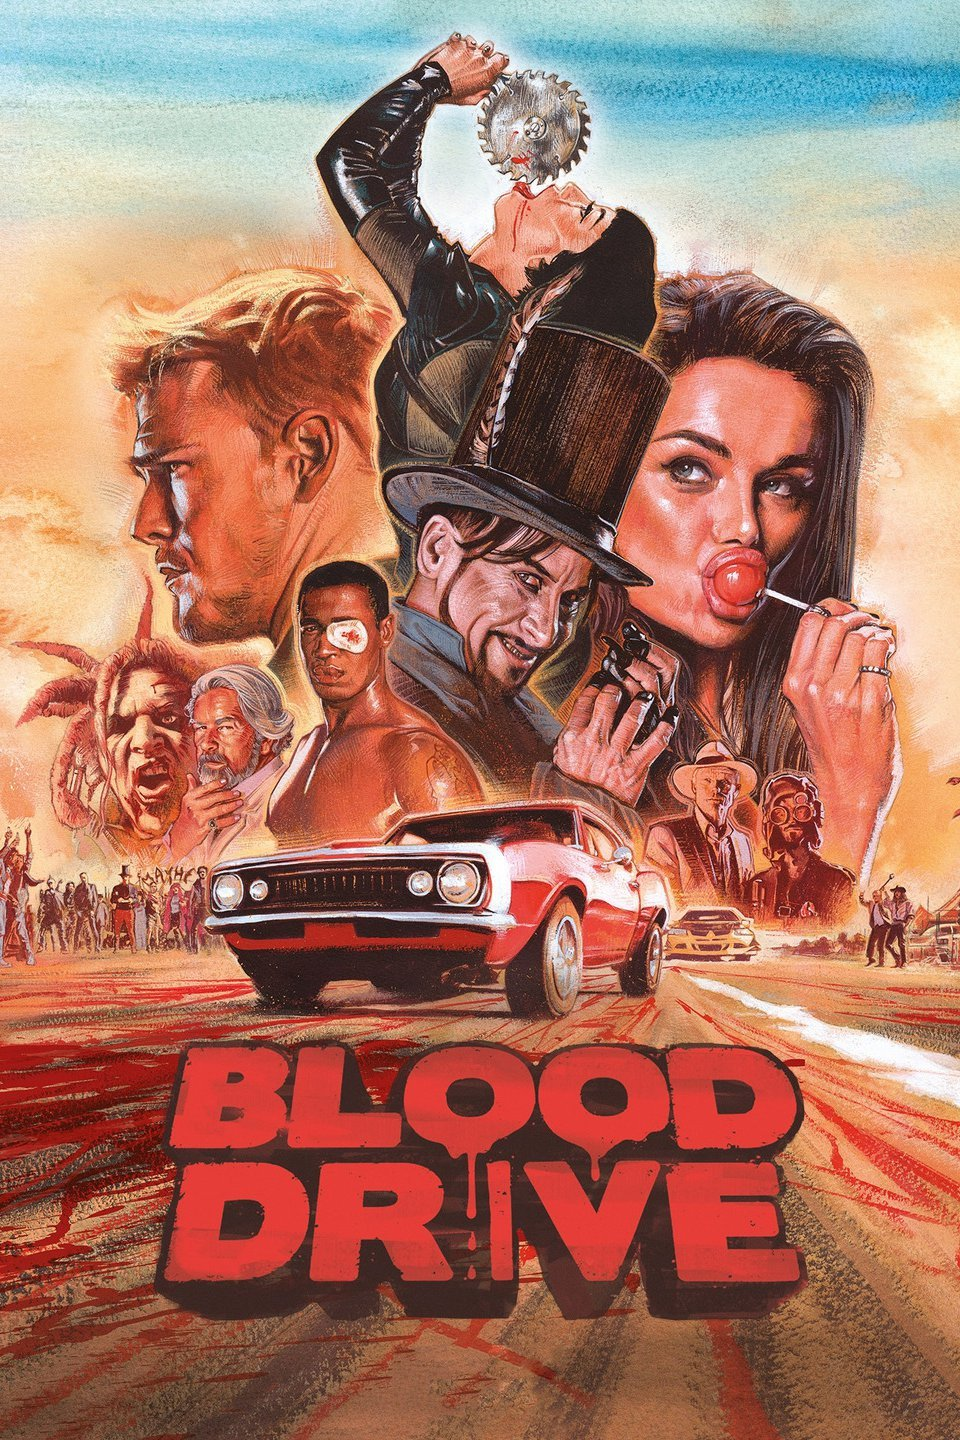 Blood Drive Tv Series Download Season 1 Episode 6 HDTV Micromkv